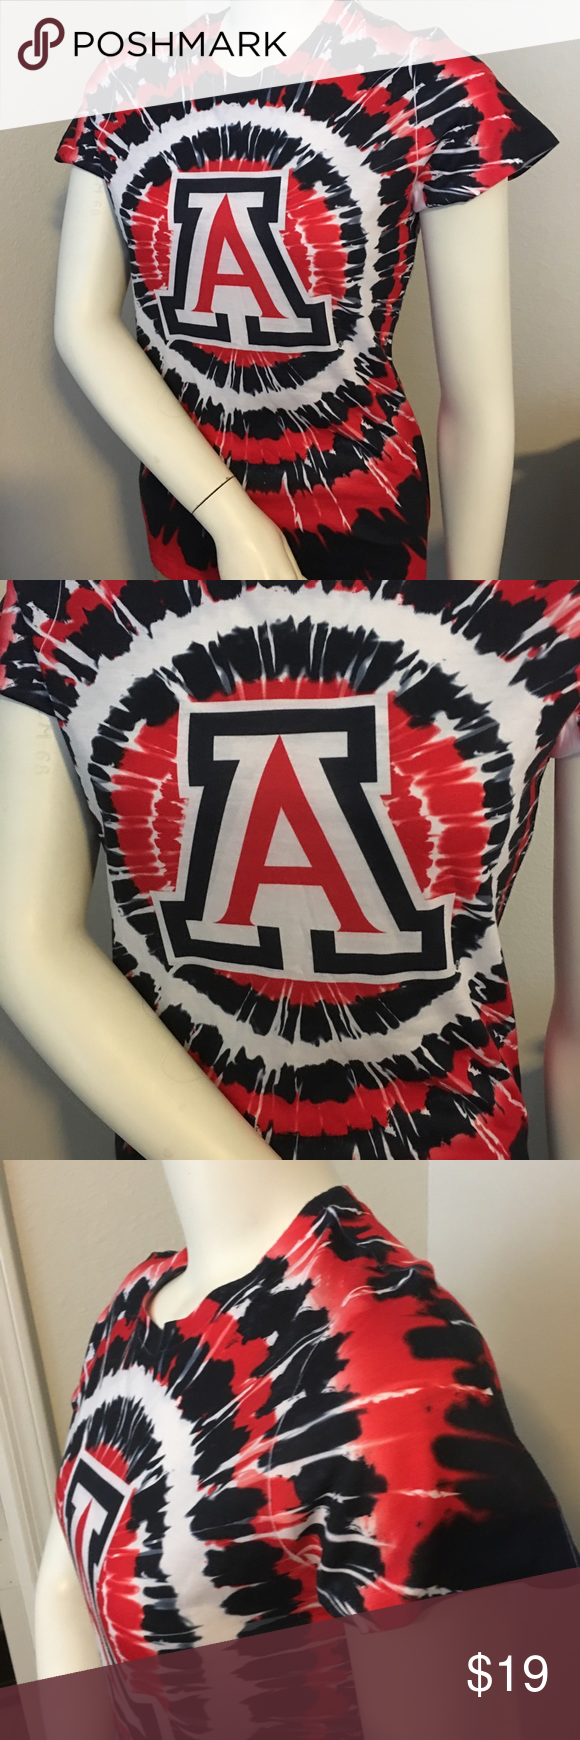 """NCAA Arizona Wildcats tie-dye womens shirt sz: M Thank you for viewing my listing, for sale is a women's, short sleeve, university of Arizona Wildcats, red white and blue, short sleeve graphic T-shirt. T-shirt is tie-dye.  If you have any questions or would like additional photos please feel free to ask.   Sz: M  From under one arm to under the other measures appx 17"""" from the top of the shoulder to the bottom of the shirt measures appx 26"""" Tops Tees - Short Sleeve"""